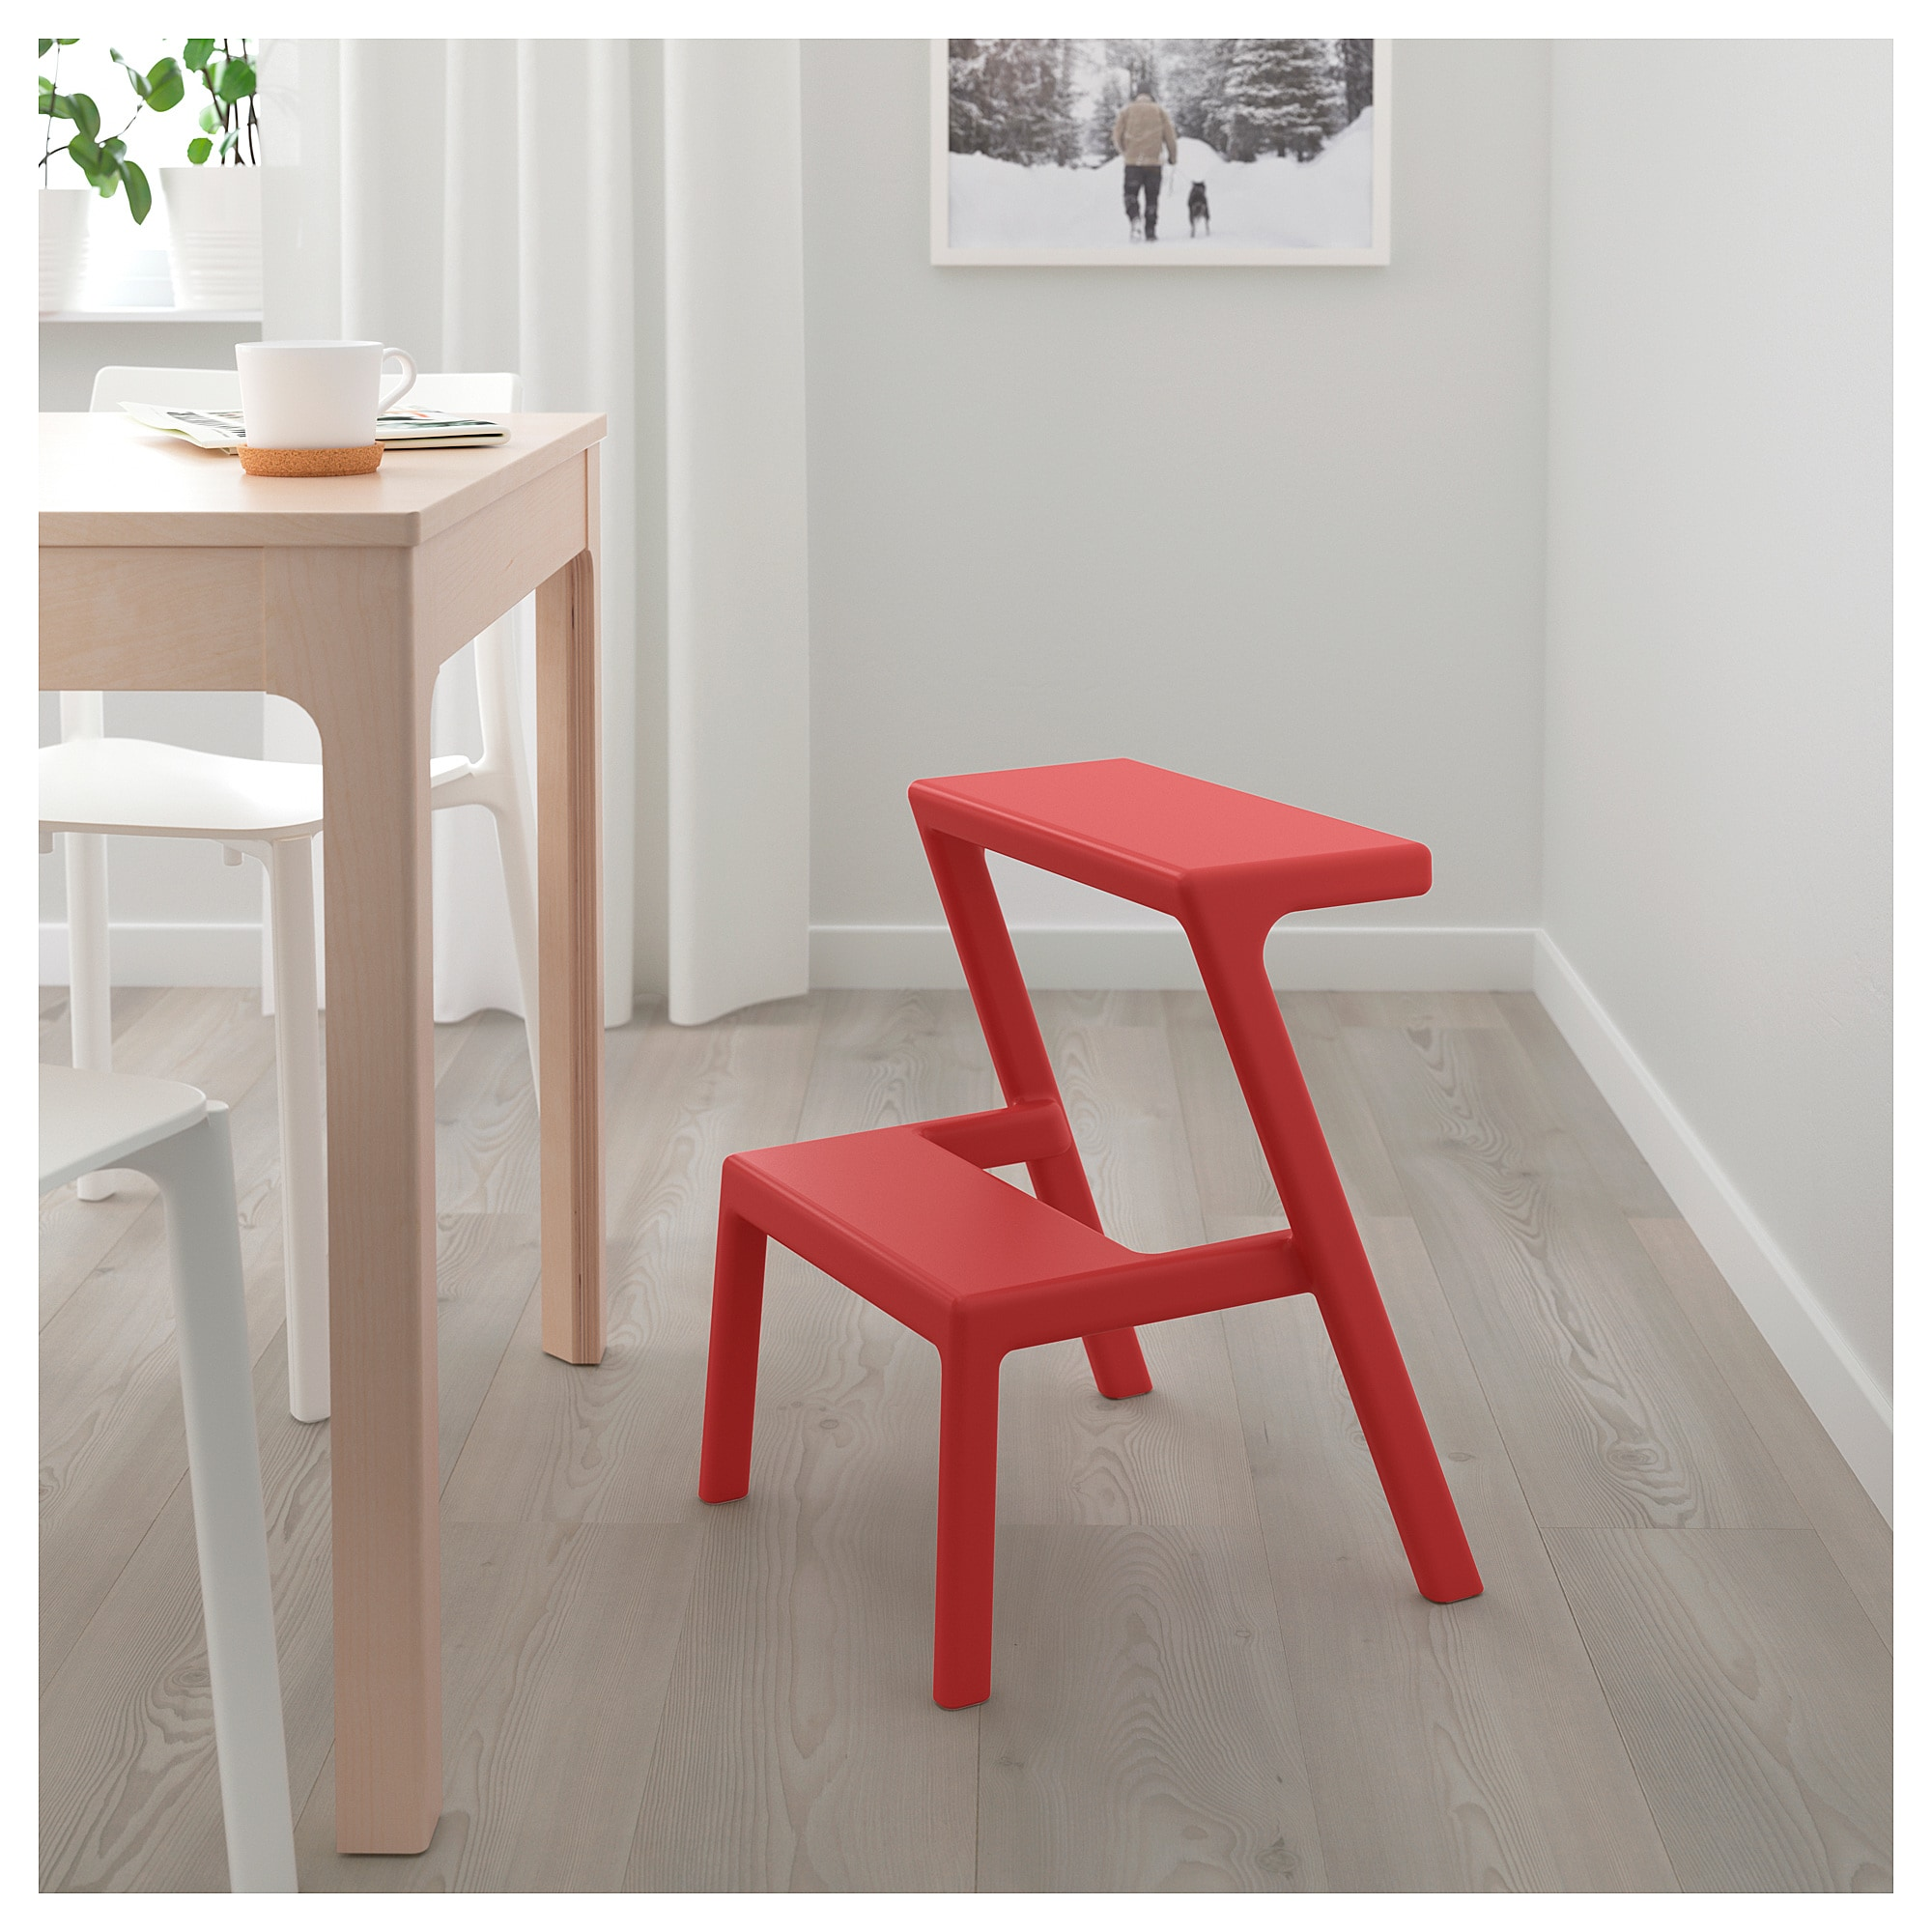 Prime Ikea Masterby Step Stool Brown Red Boxed Project Uwap Interior Chair Design Uwaporg